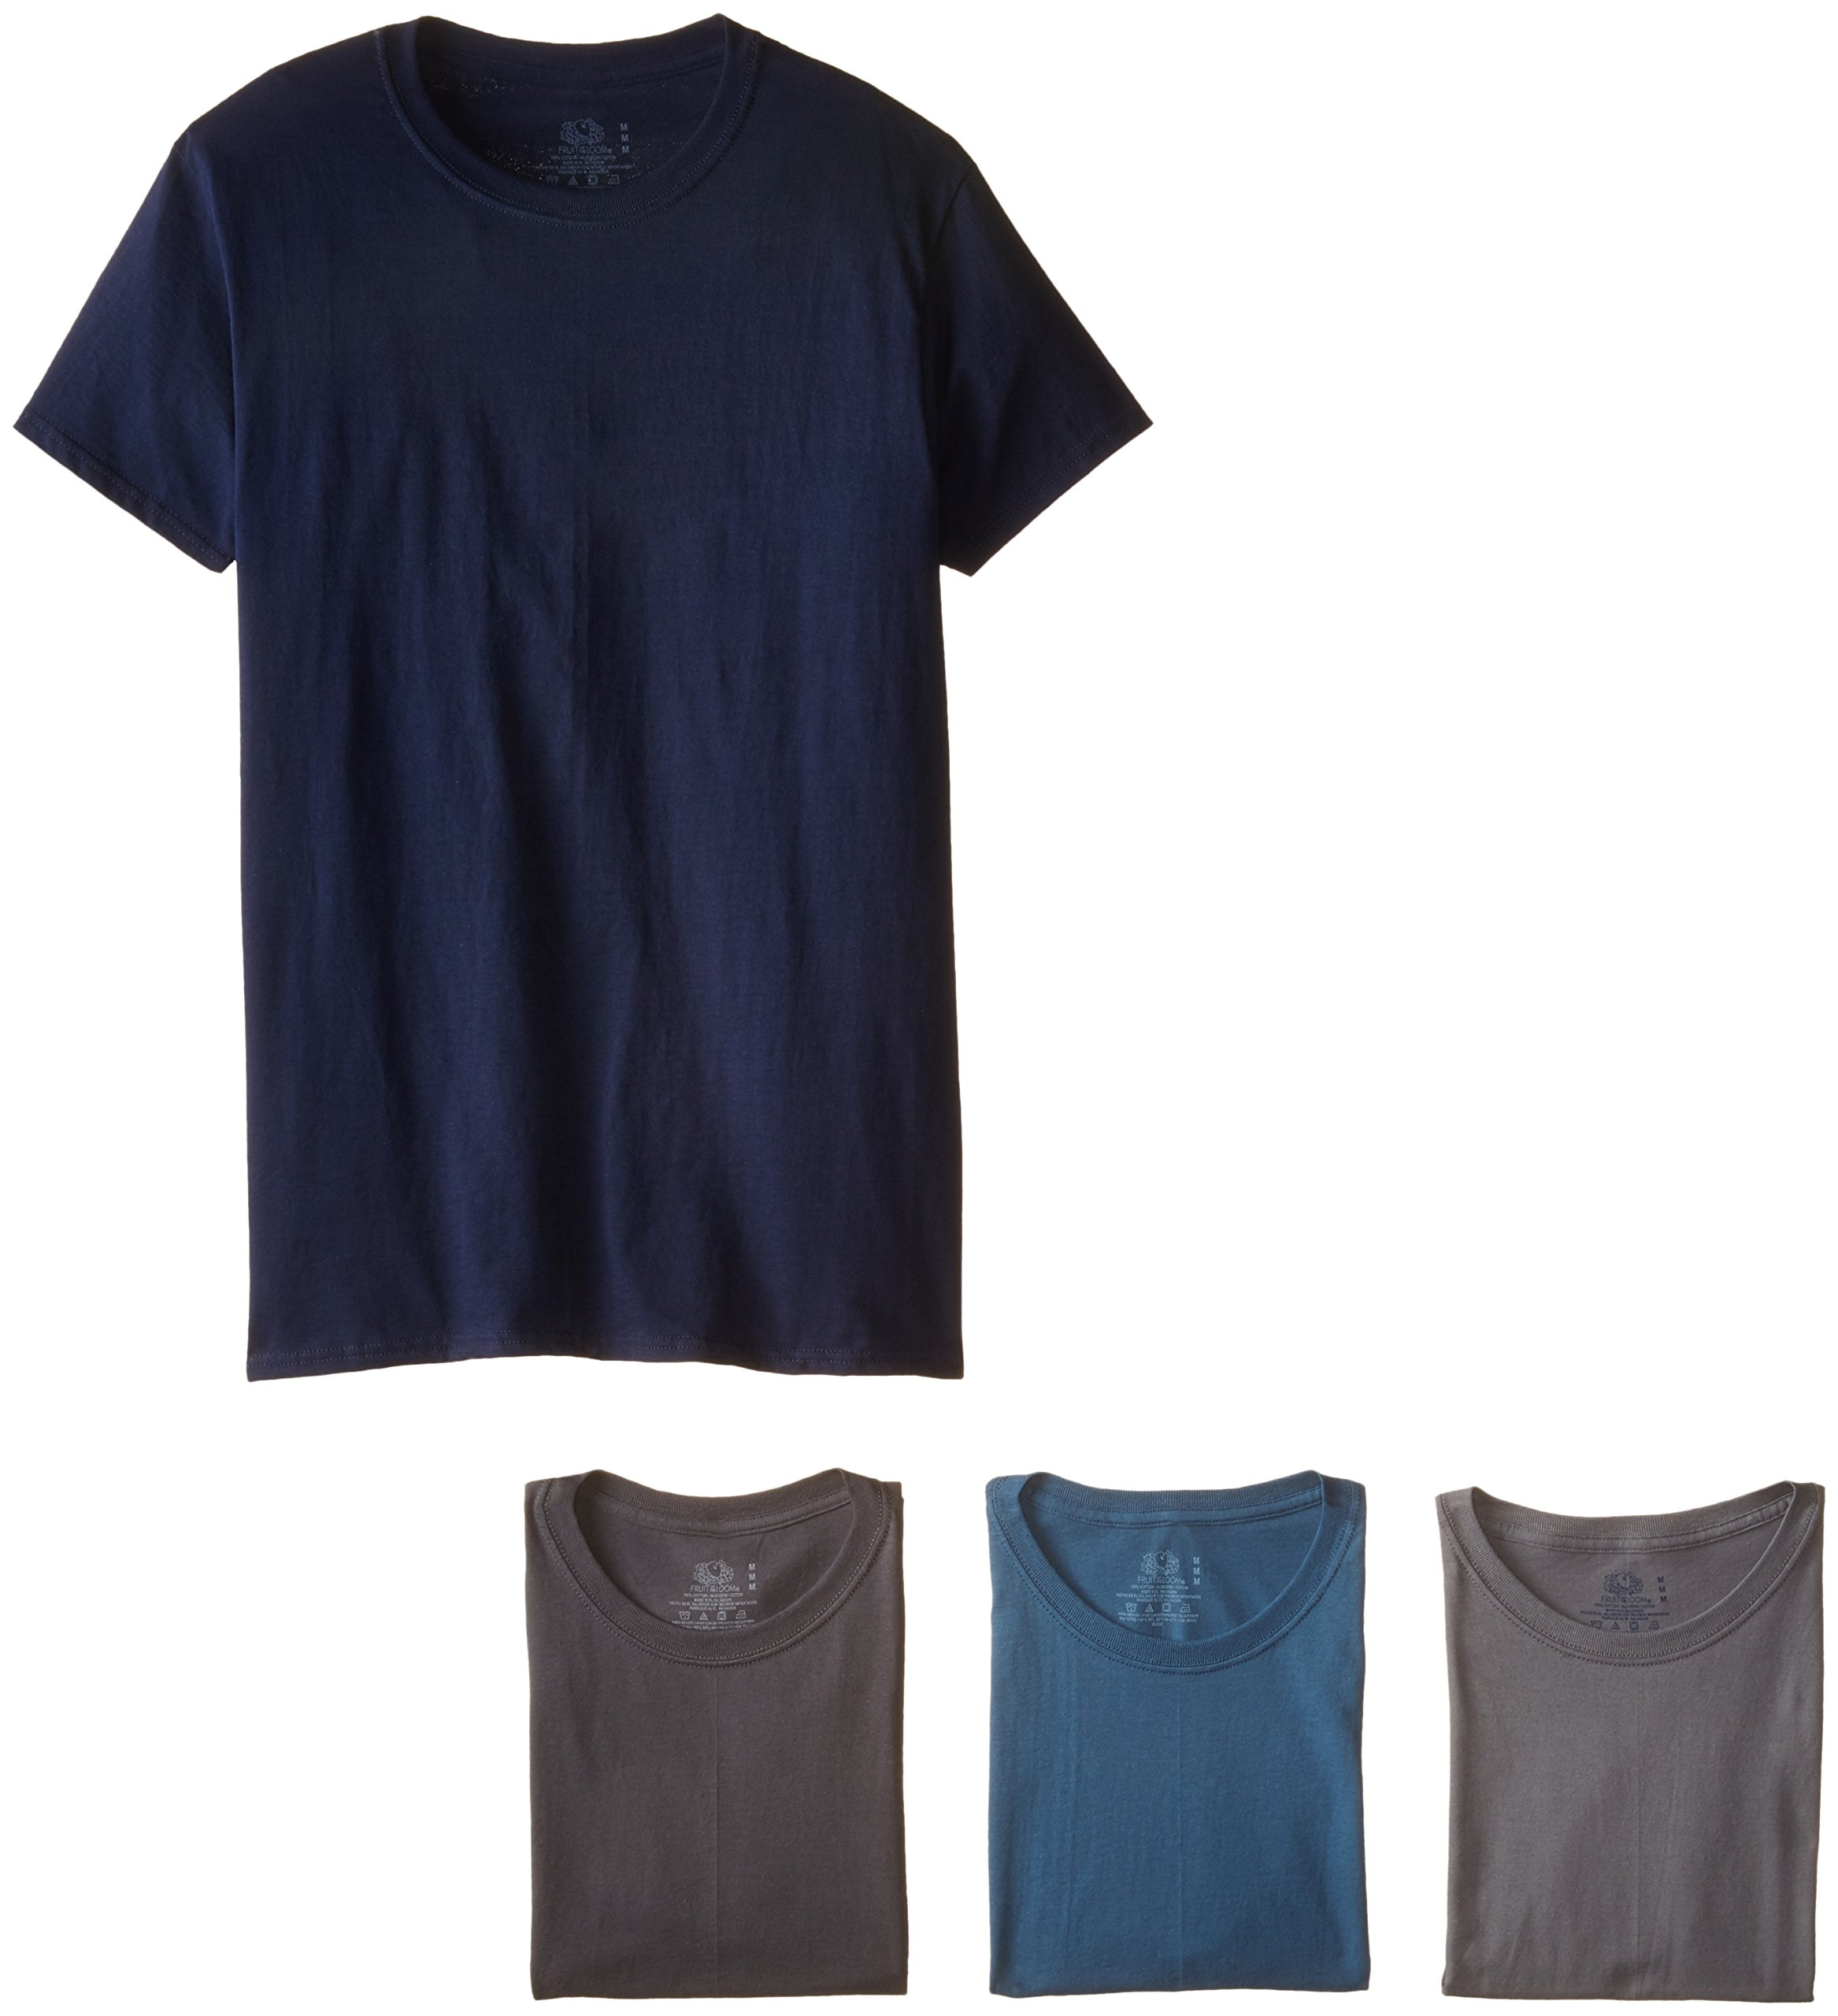 Fruit of the Loom Men's Crew Neck T-Shirt (Pack of 4), Assorted, X-Large by Fruit of the Loom